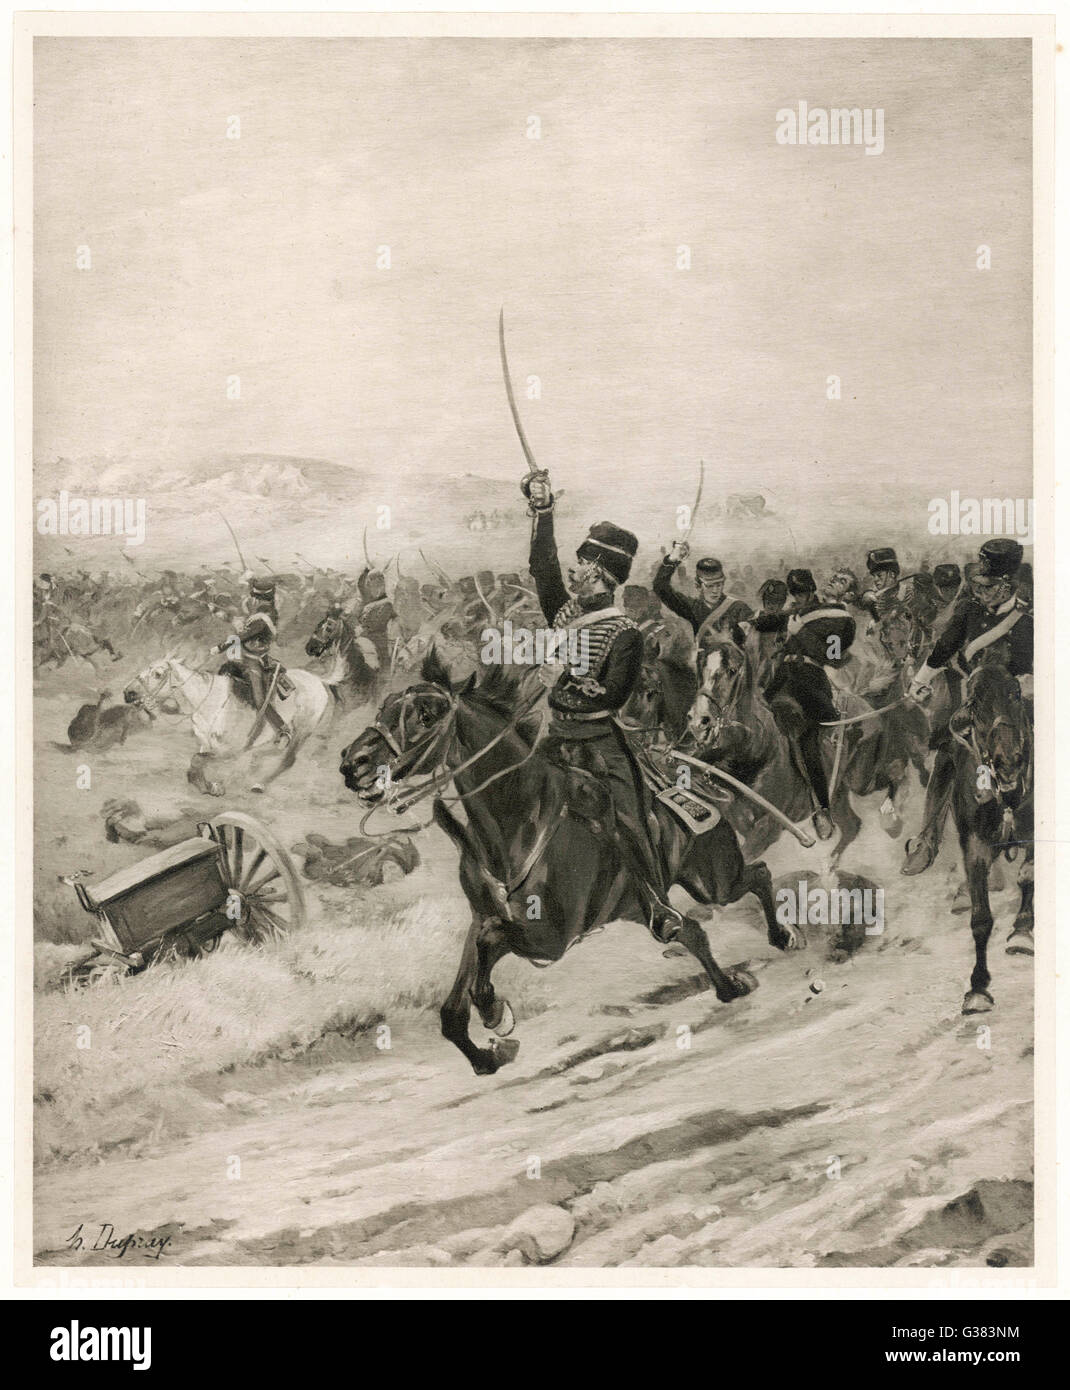 The Charge of the Light  Brigade  - 'into the Valley  of Death !'        Date: 25 October 1854 - Stock Image